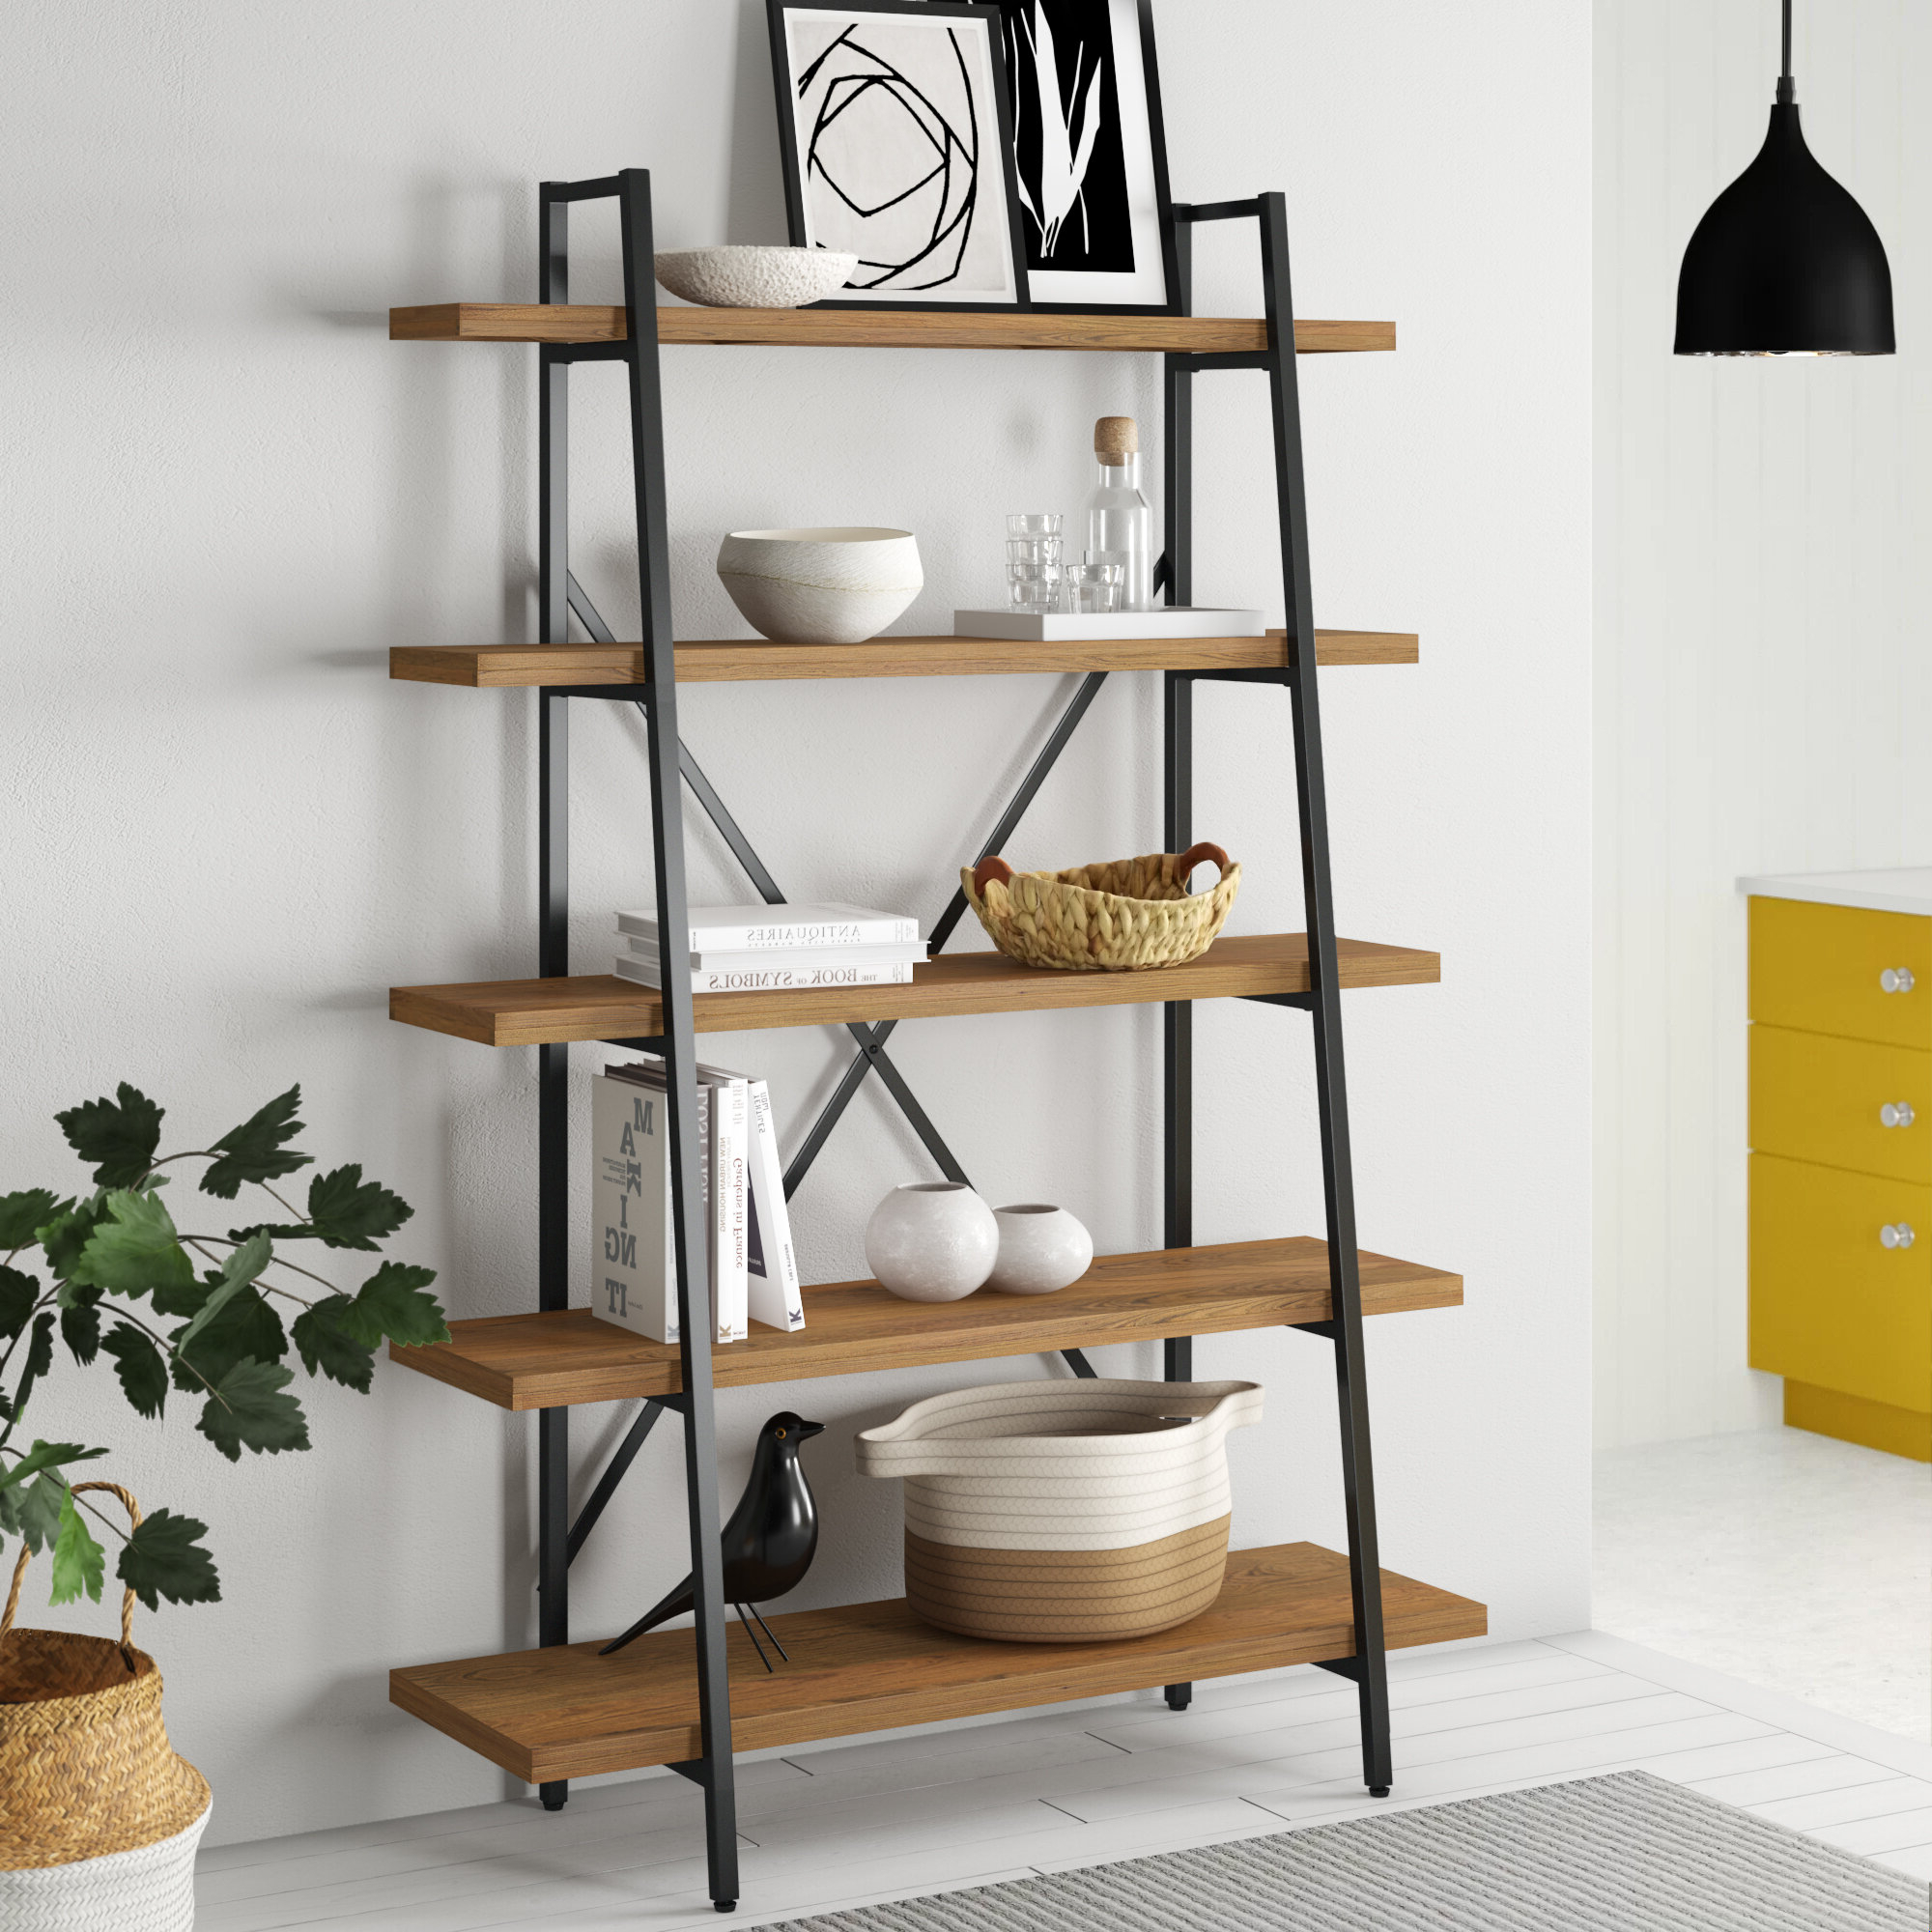 Fashionable Champney Modern Etagere Bookcases With Regard To Champney Etagere Bookcase (View 10 of 20)